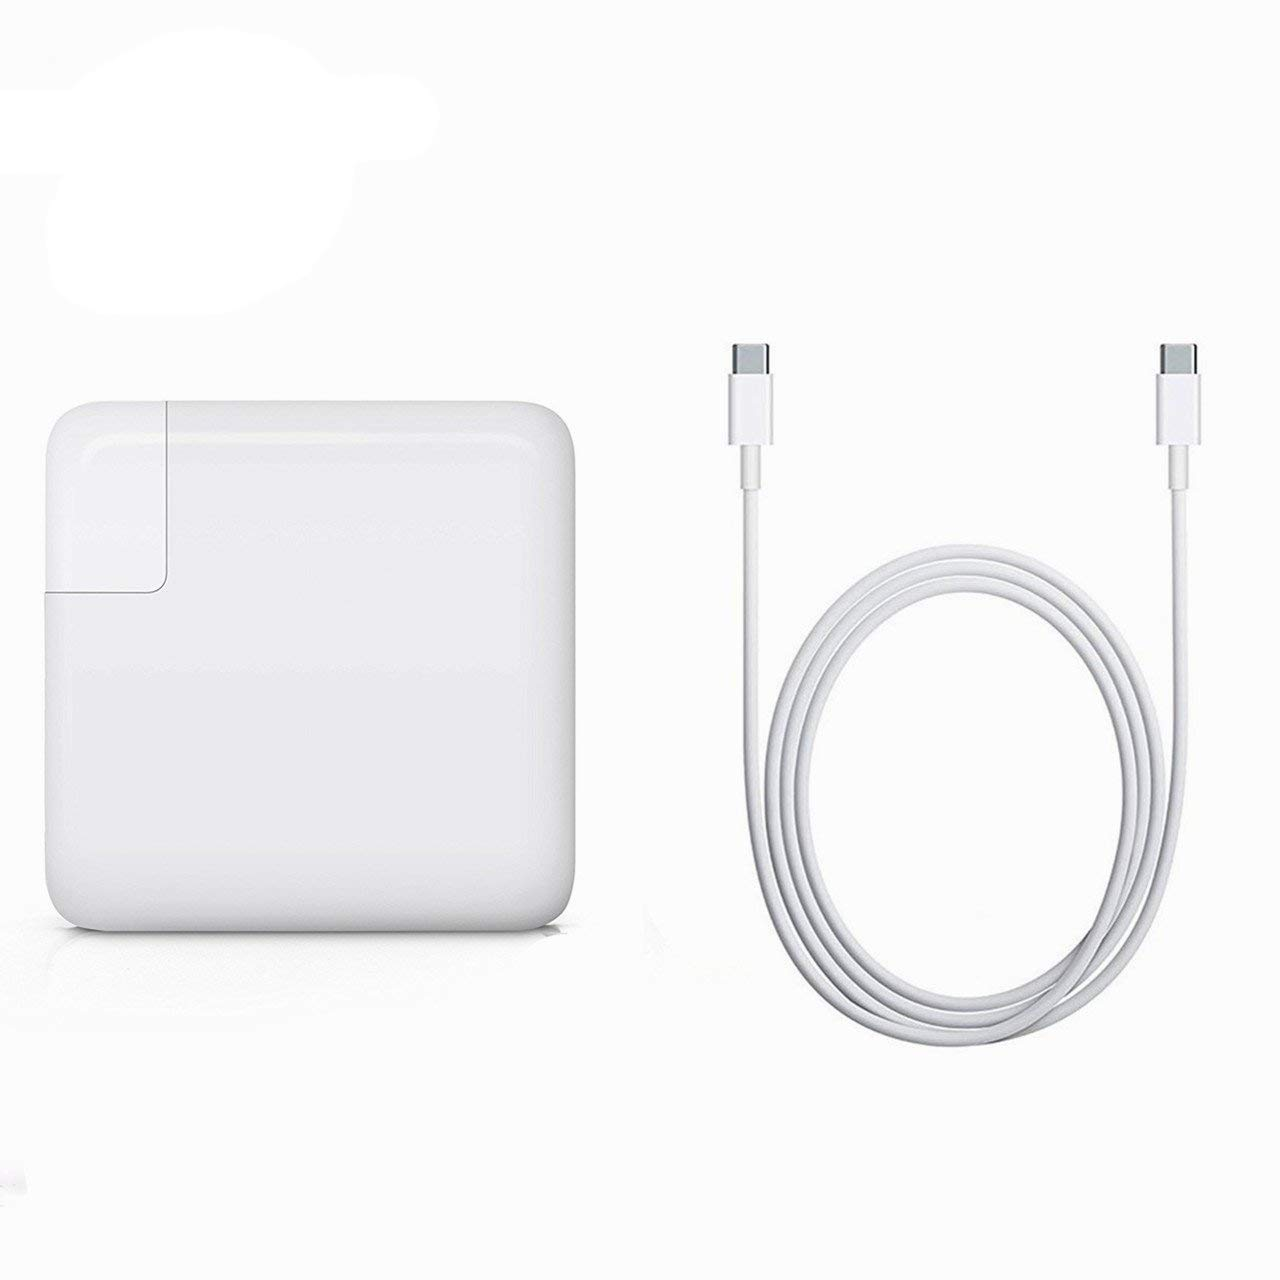 BOLWEO 61W USB-C Power Adapter, Replacement Charger Compatible with MacBook Pro 13 inch 2016 MacBook 12 inch 2015 with 2M USB-C to USB-C Charge Cable